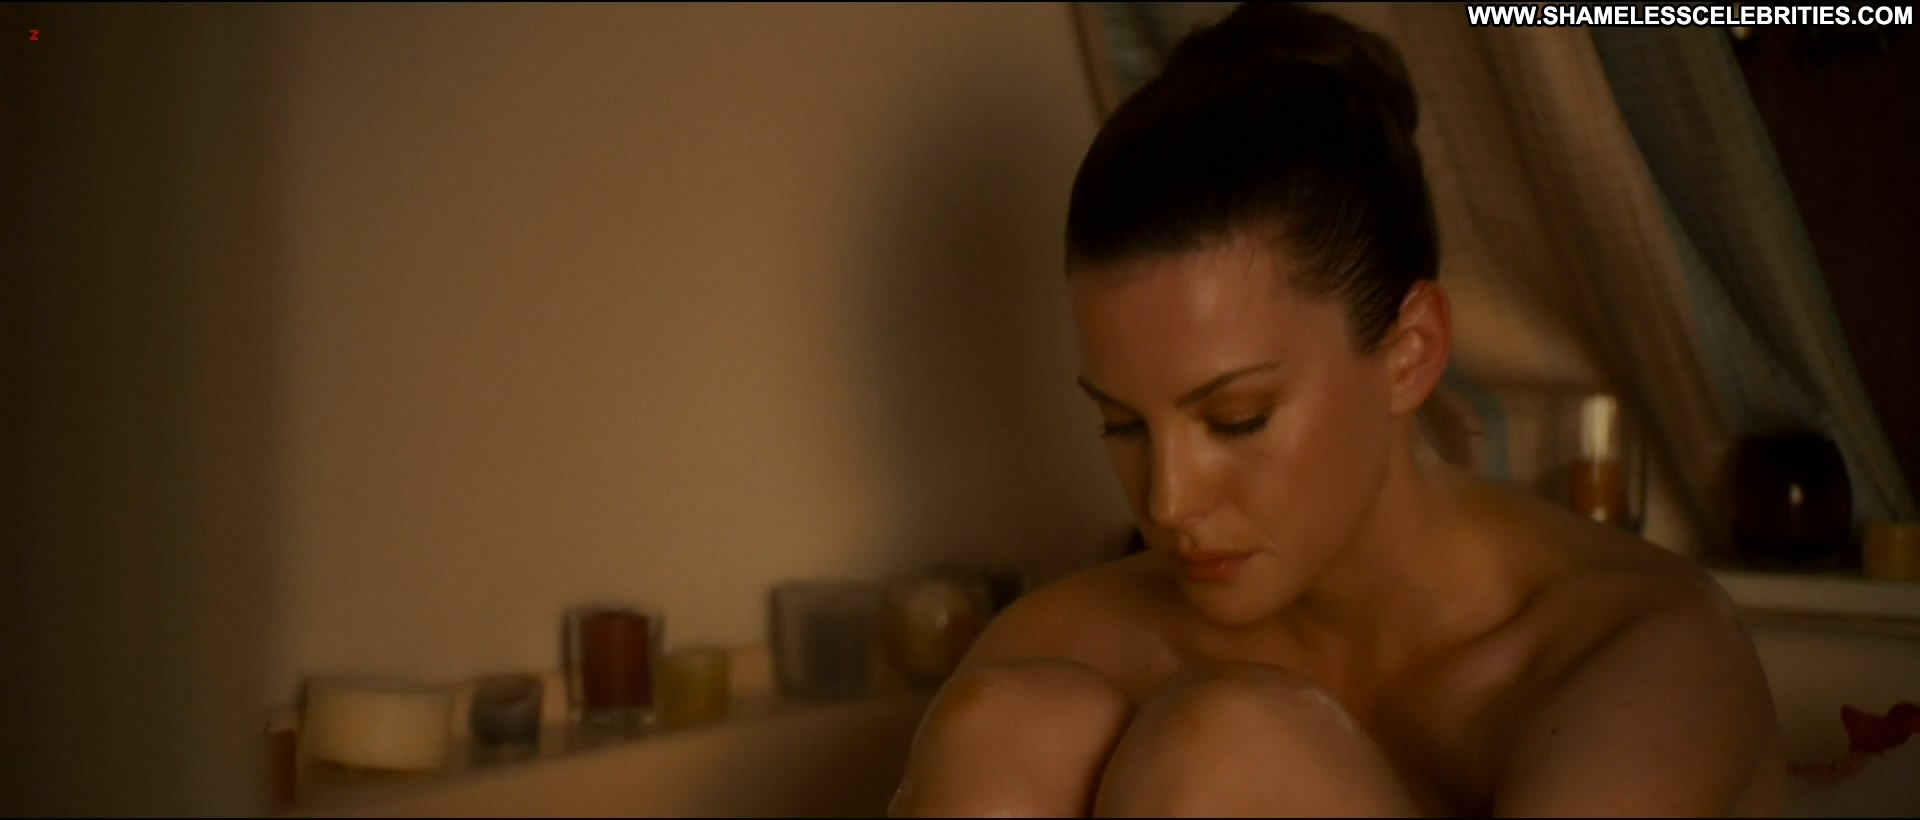 Liv Tyler The Strangers Celebrity Posing Hot Celebrity Nude Bikini Stripping Lingerie Sexy ...